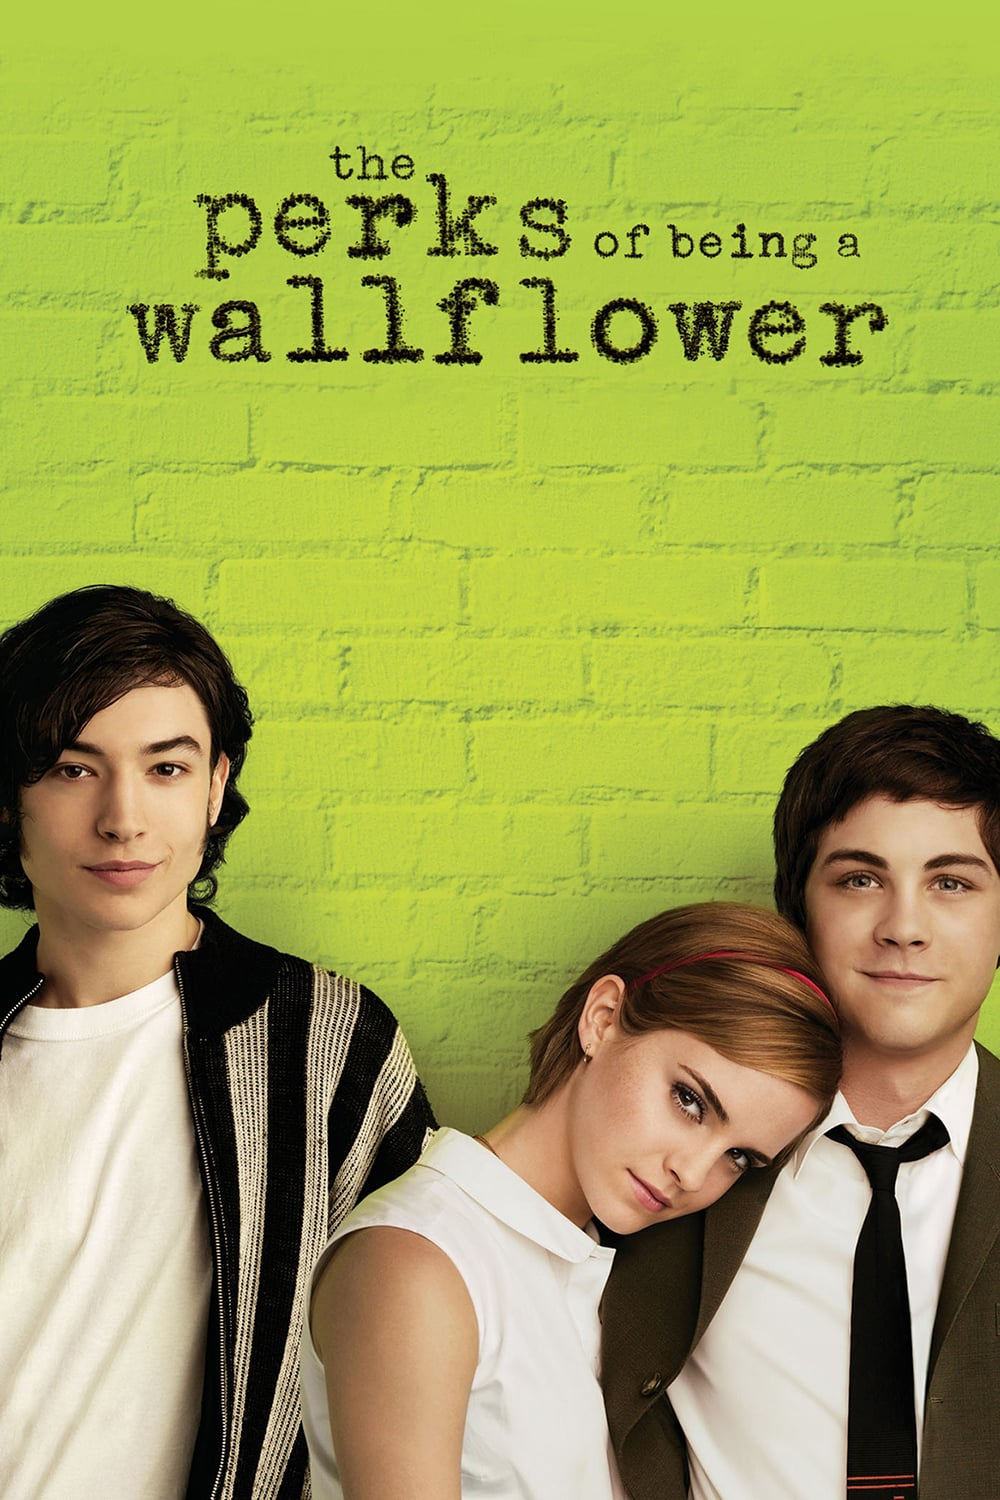 دانلود فیلم The Perks of Being a Wallflower 2012